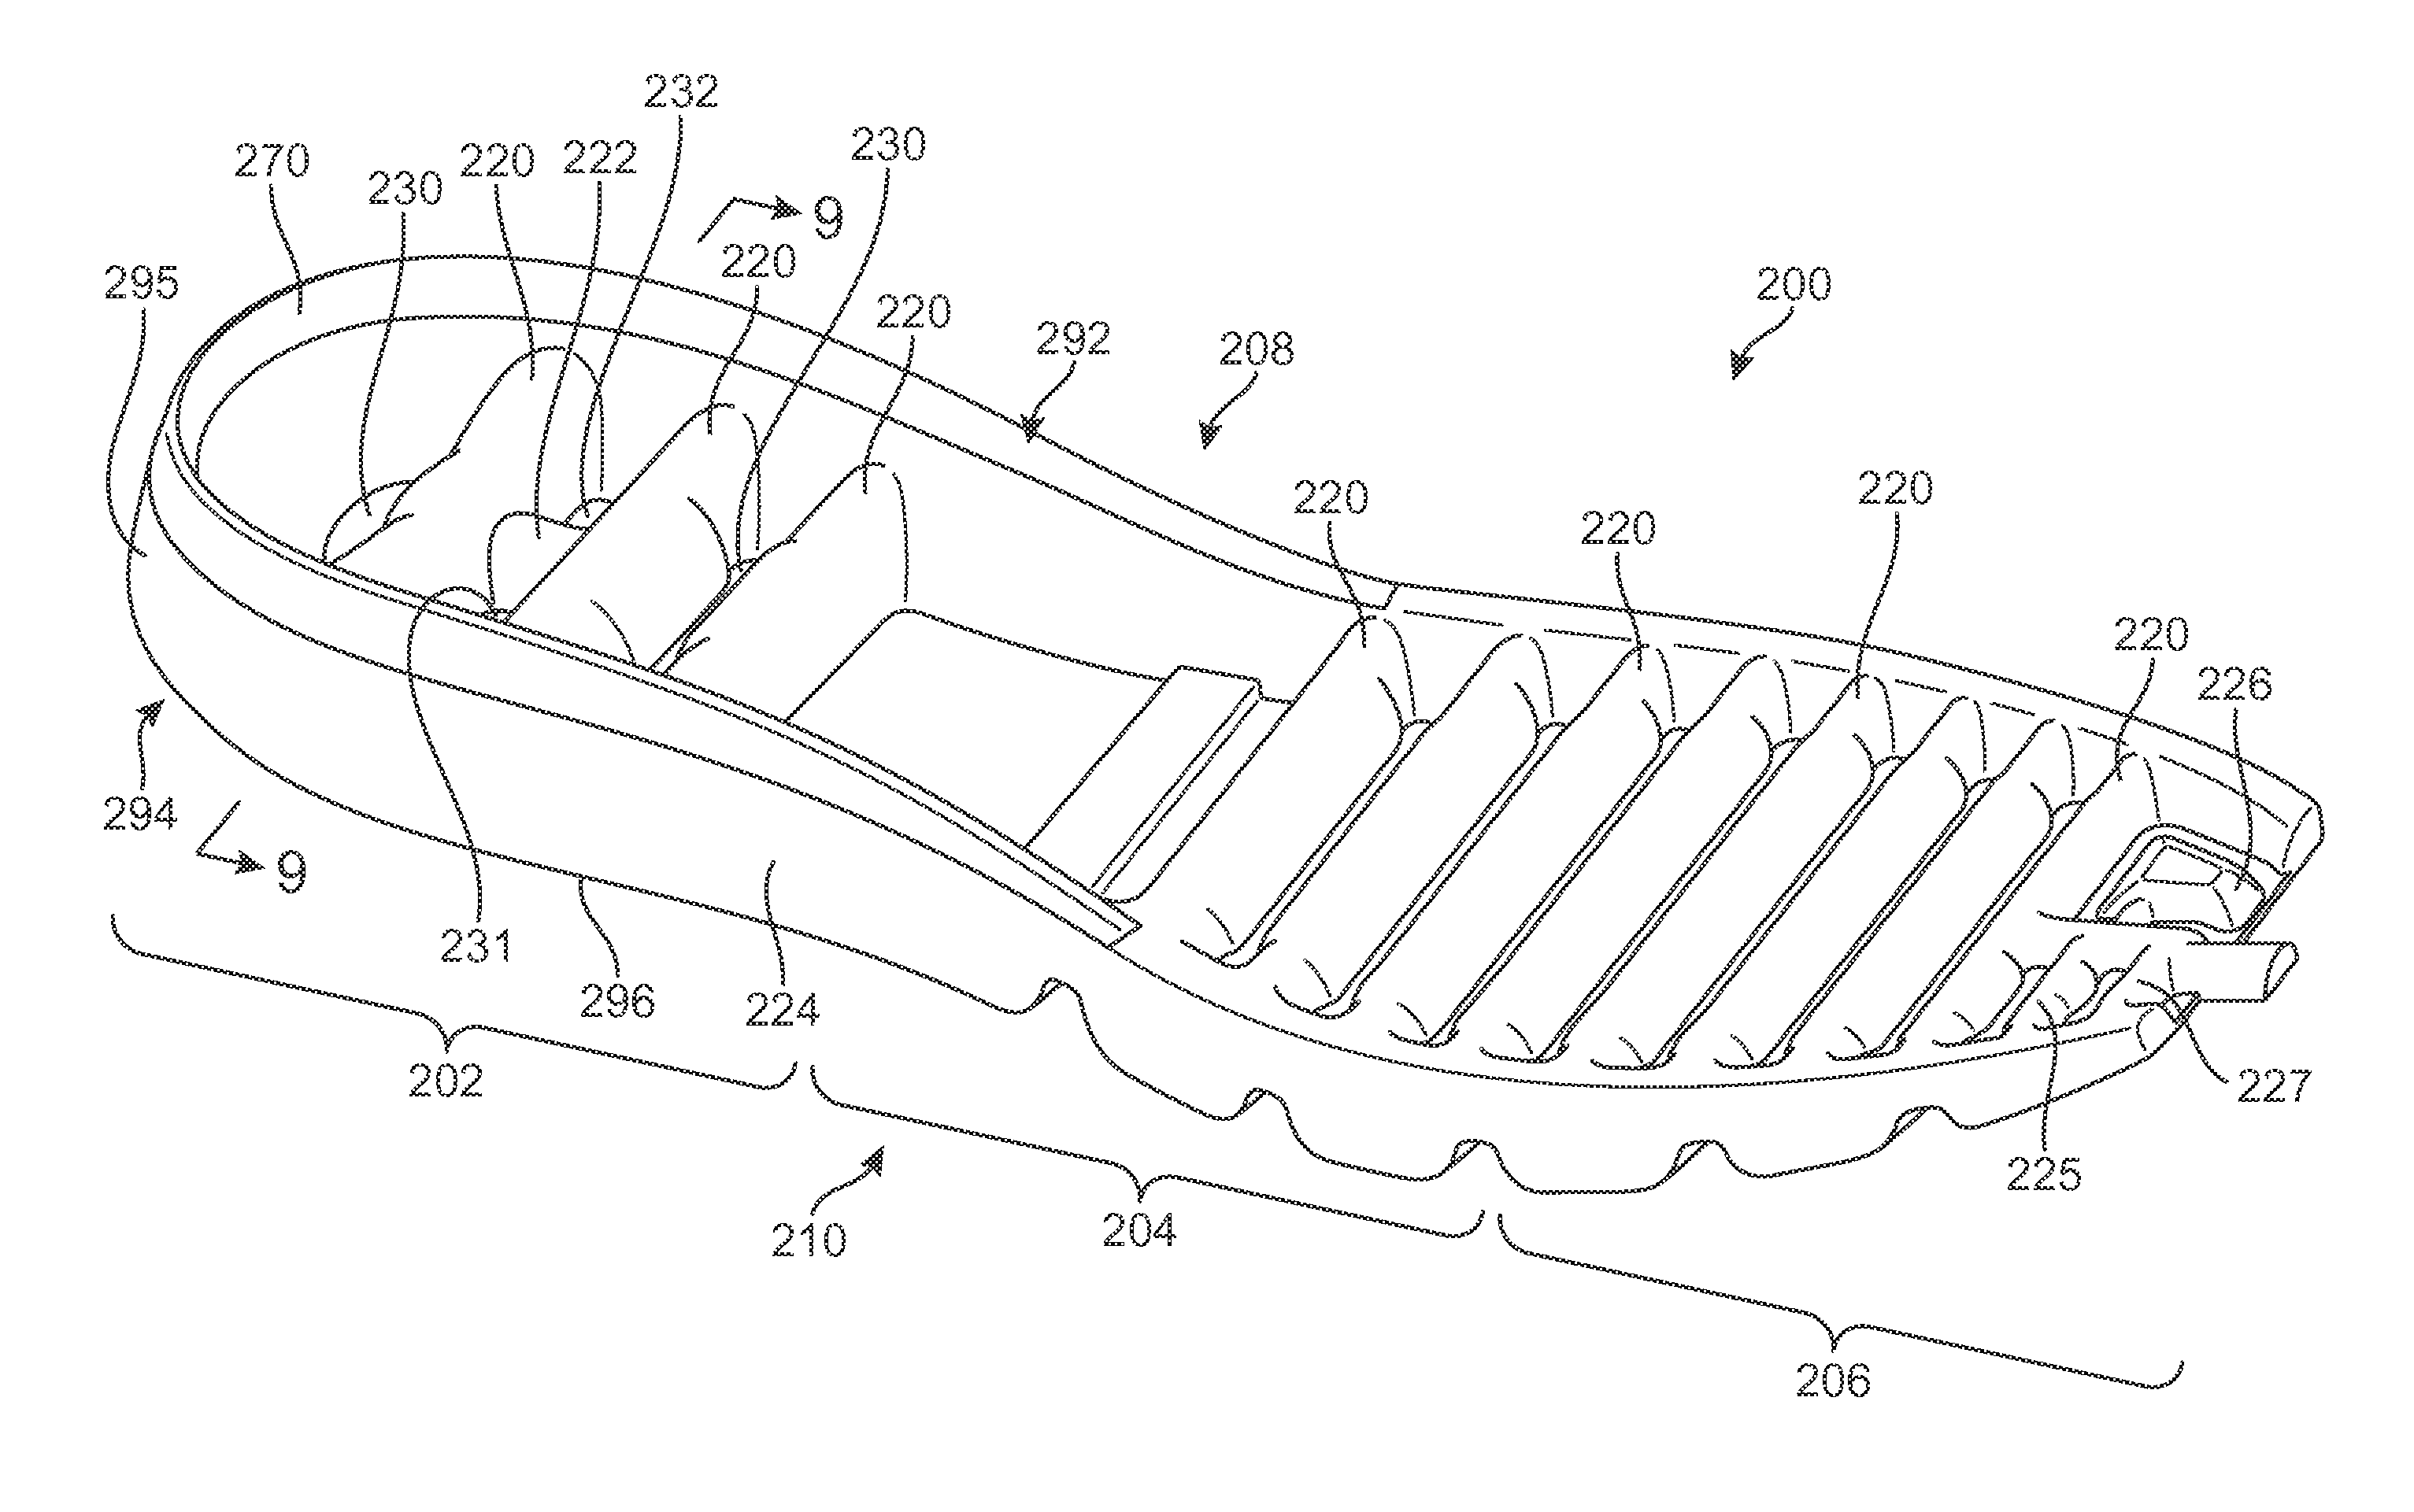 patent us 9 609 912 b2 Bone Between Ankle and Heel first claim